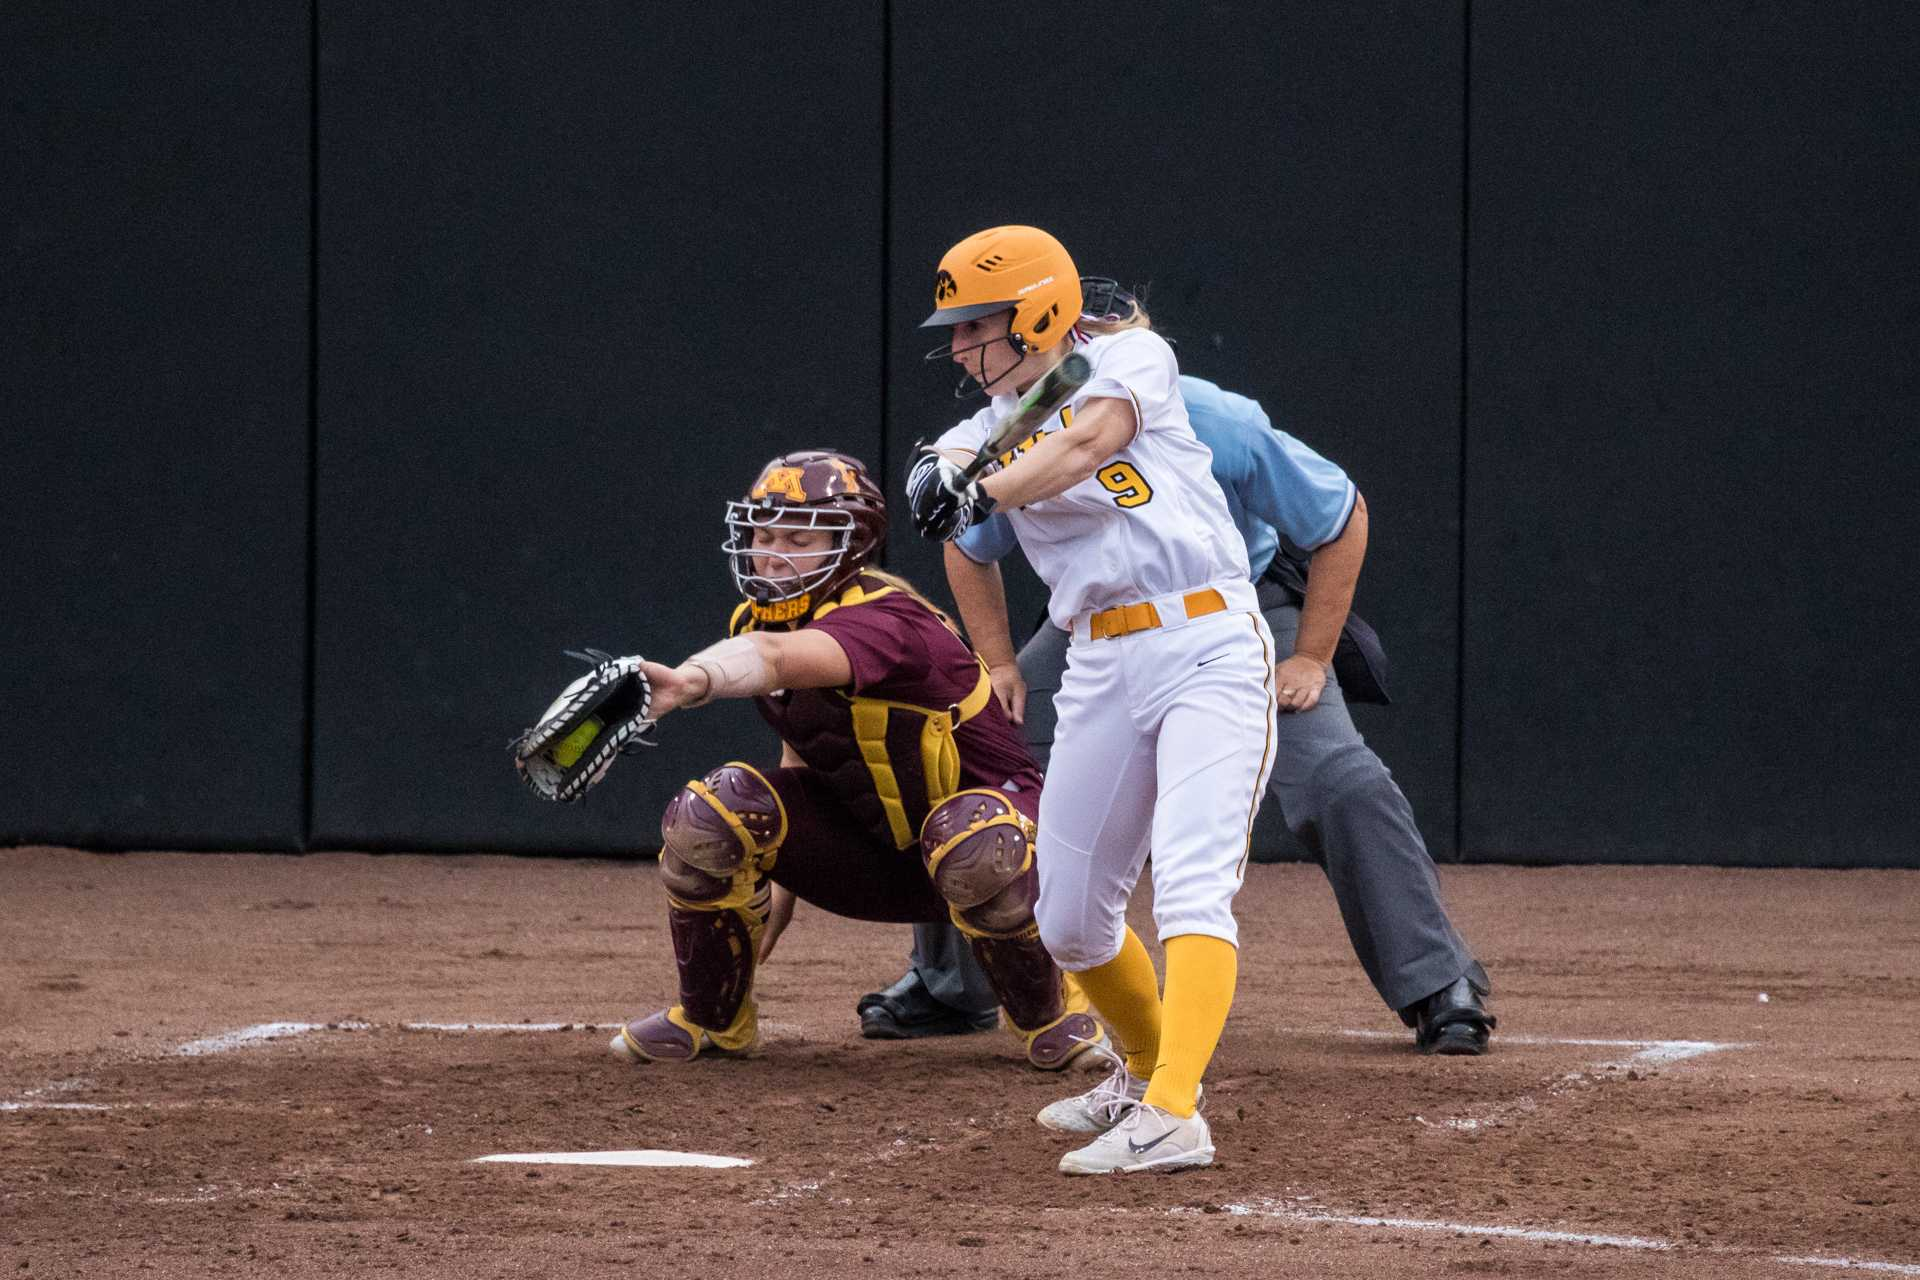 University of Iowa softball player Sarah Kurtz swings and misses during a game against the University of Minnesota on Thursday, Apr. 12, 2018. The Gophers defeated the Hawkeyes 8-0. (David Harmantas/The Daily Iowan)